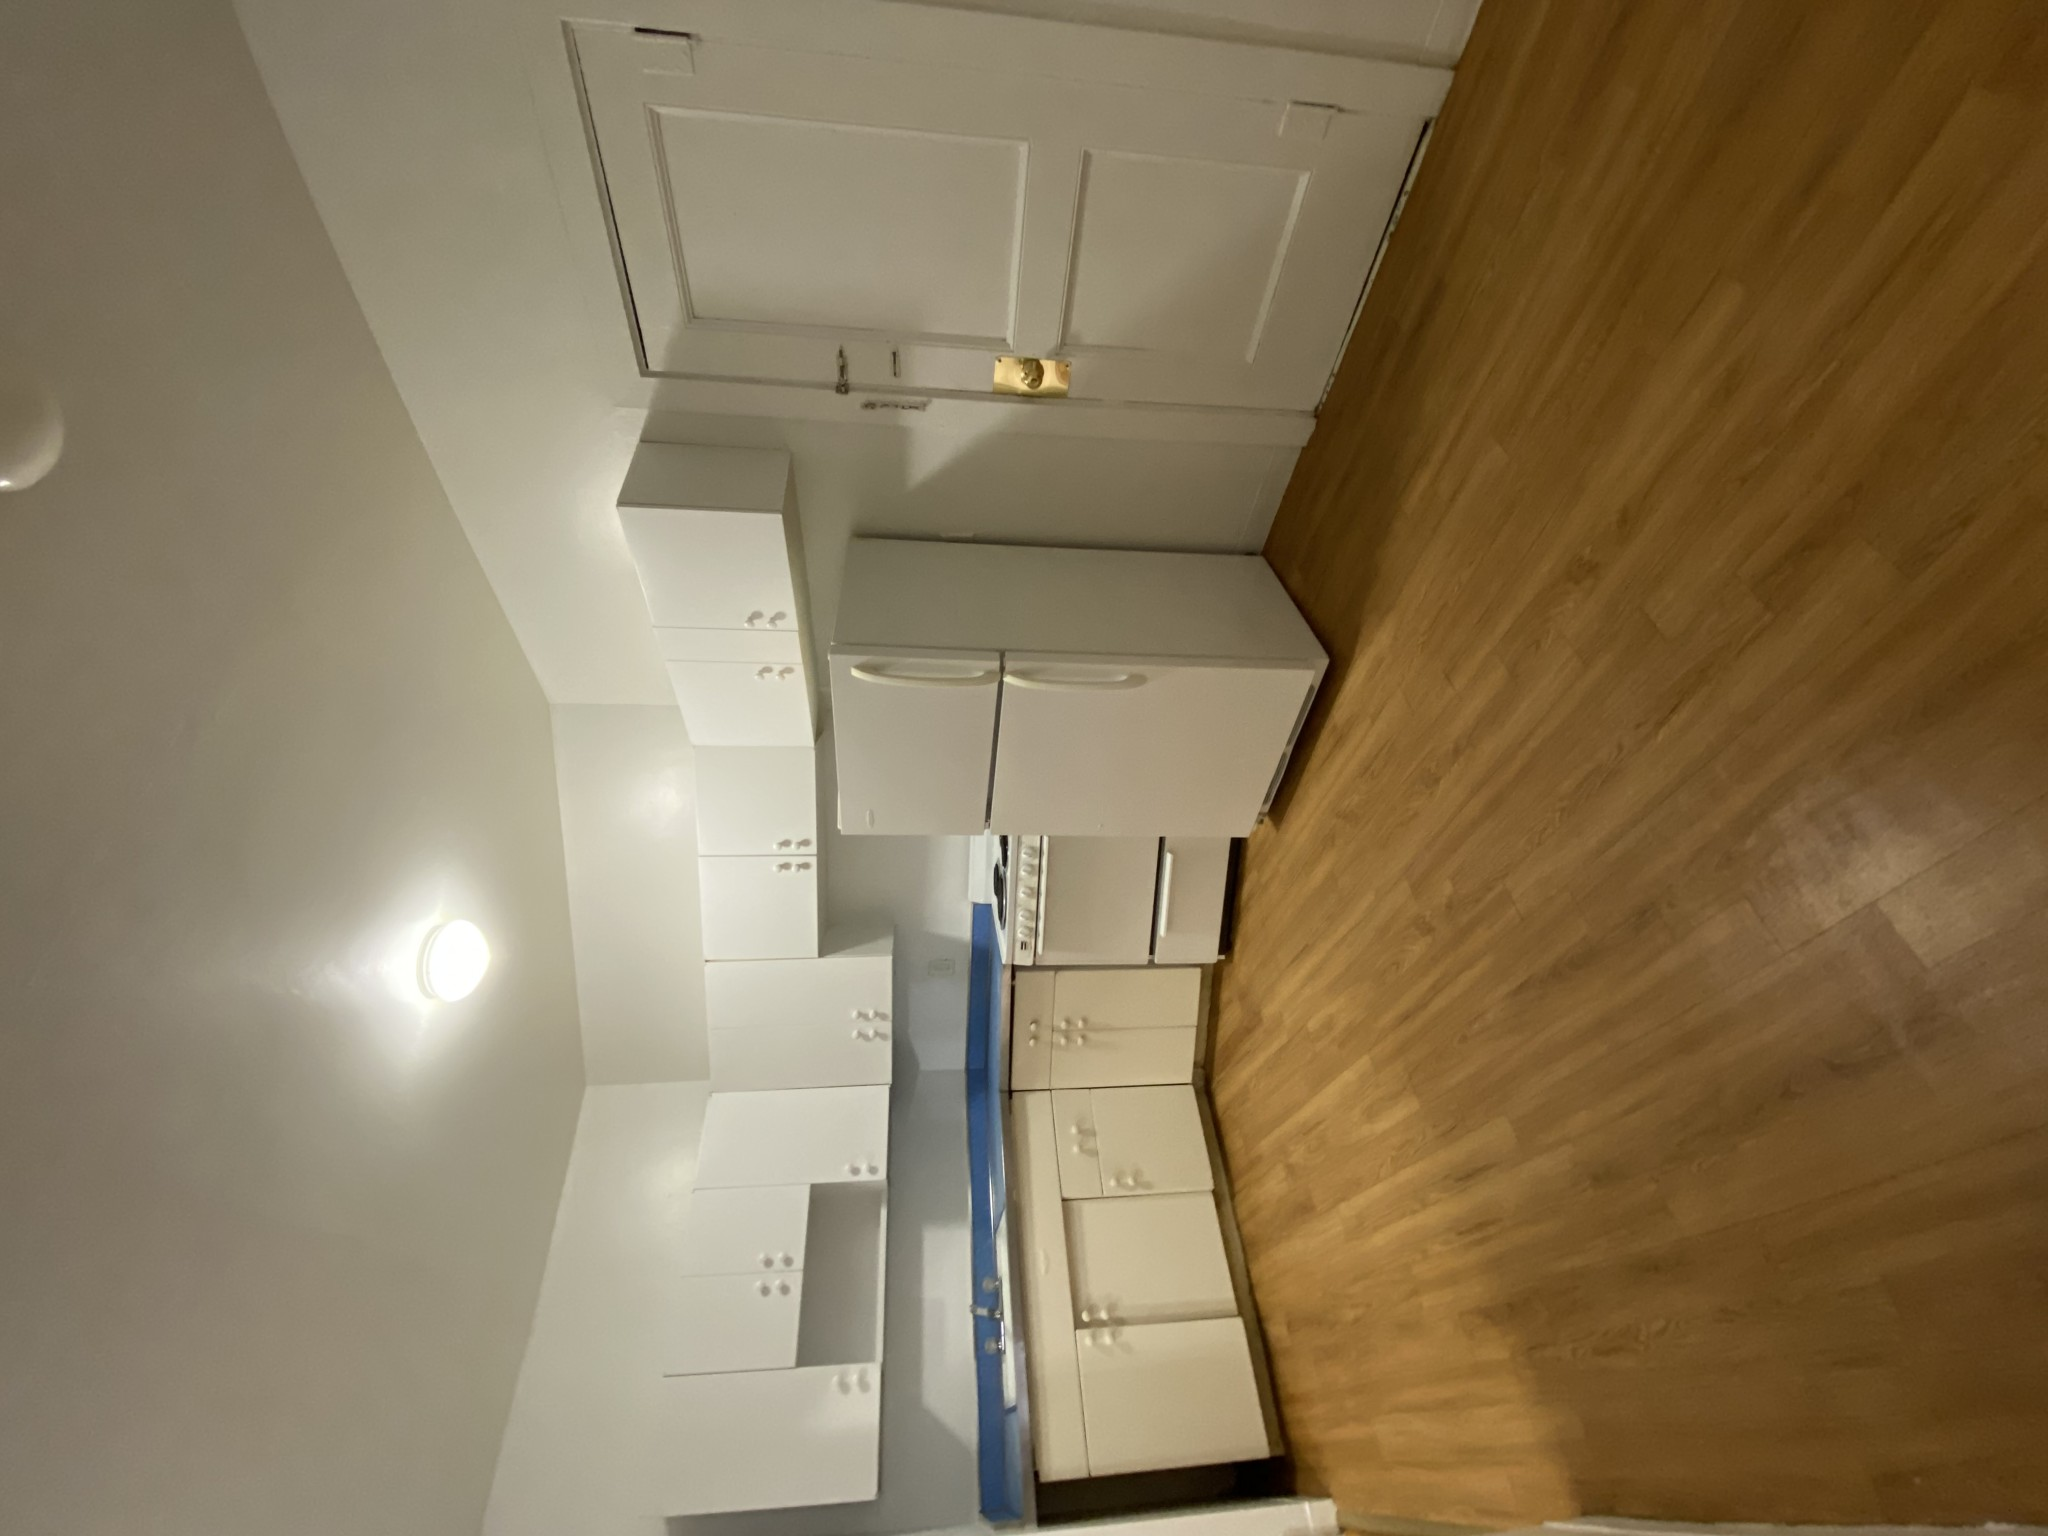 2.8 Beds, 1 Bath apartment in Brookline for $2,095